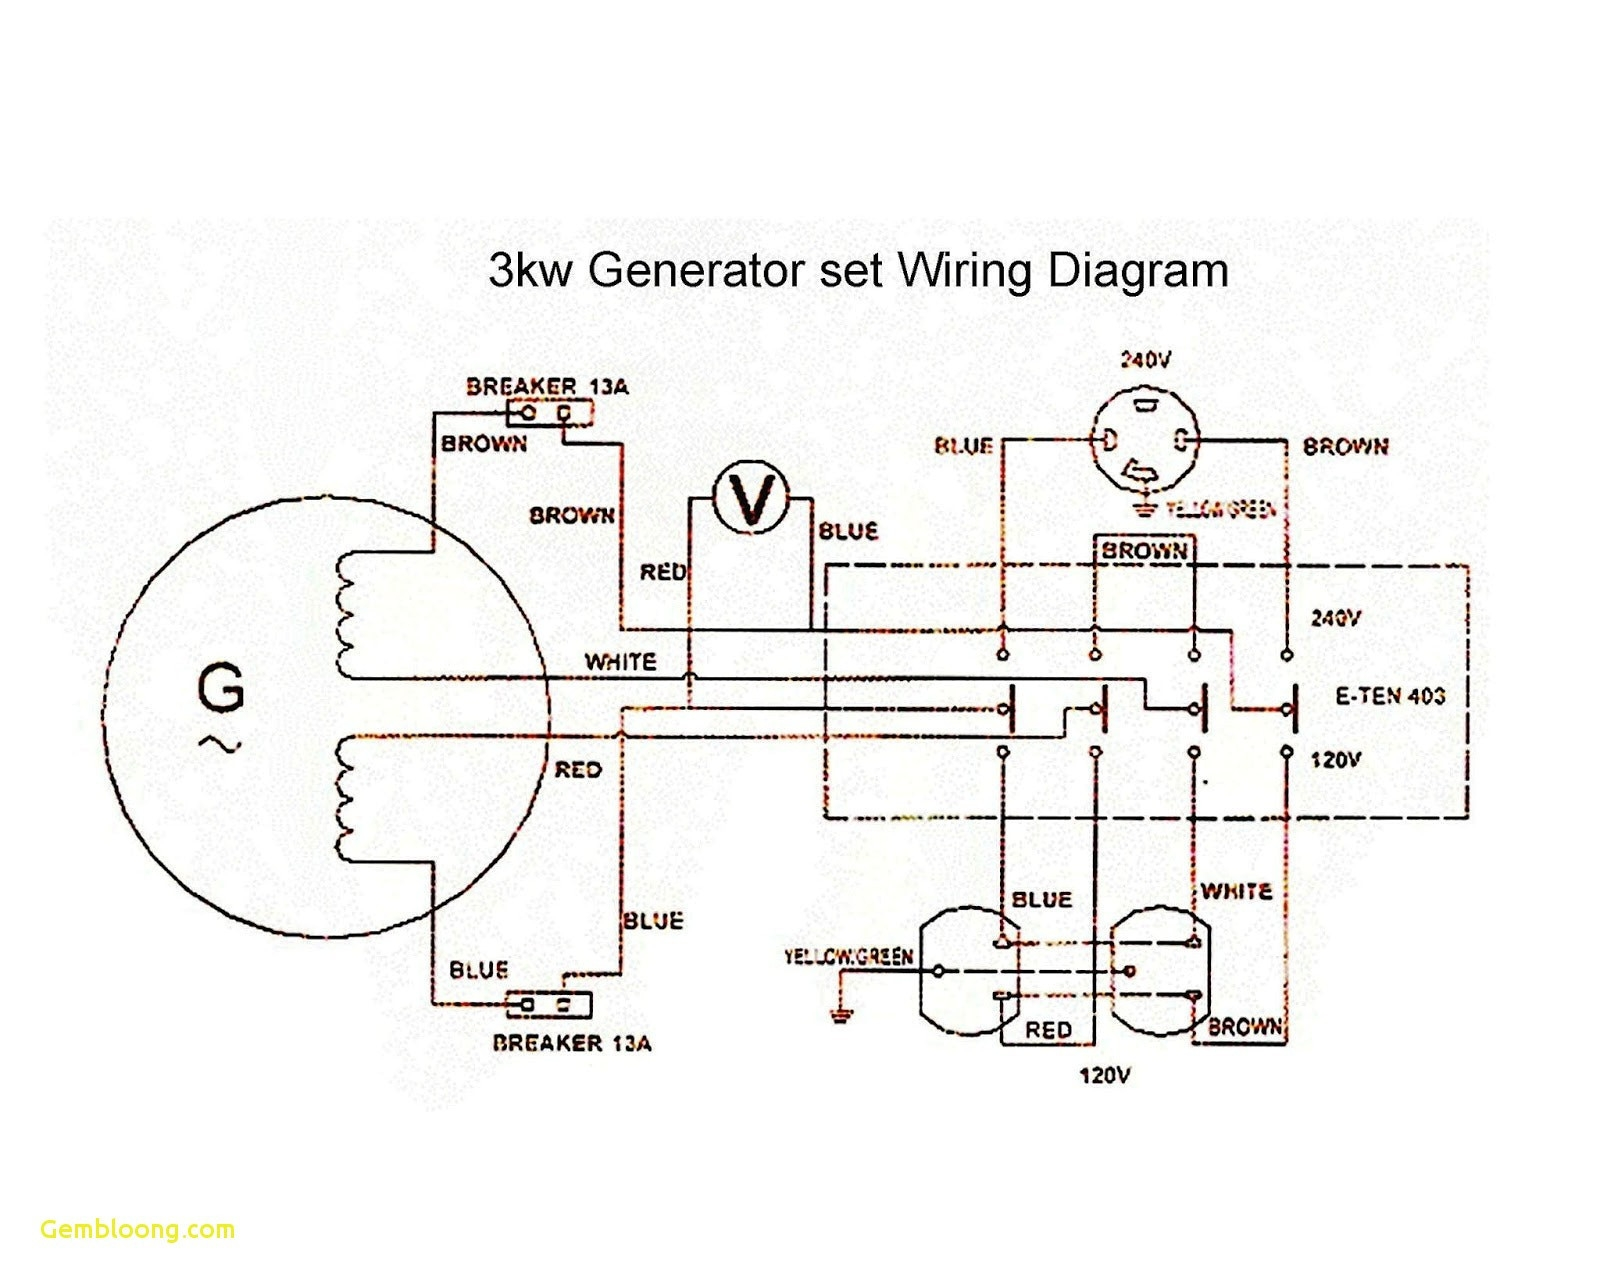 phasor generator wiring diagram Download-all power generator wiring diagrams wire center u2022 rh daniablub co kohler 5e marine generator wiring diagram phasor marine generator wiring diagram 13-l